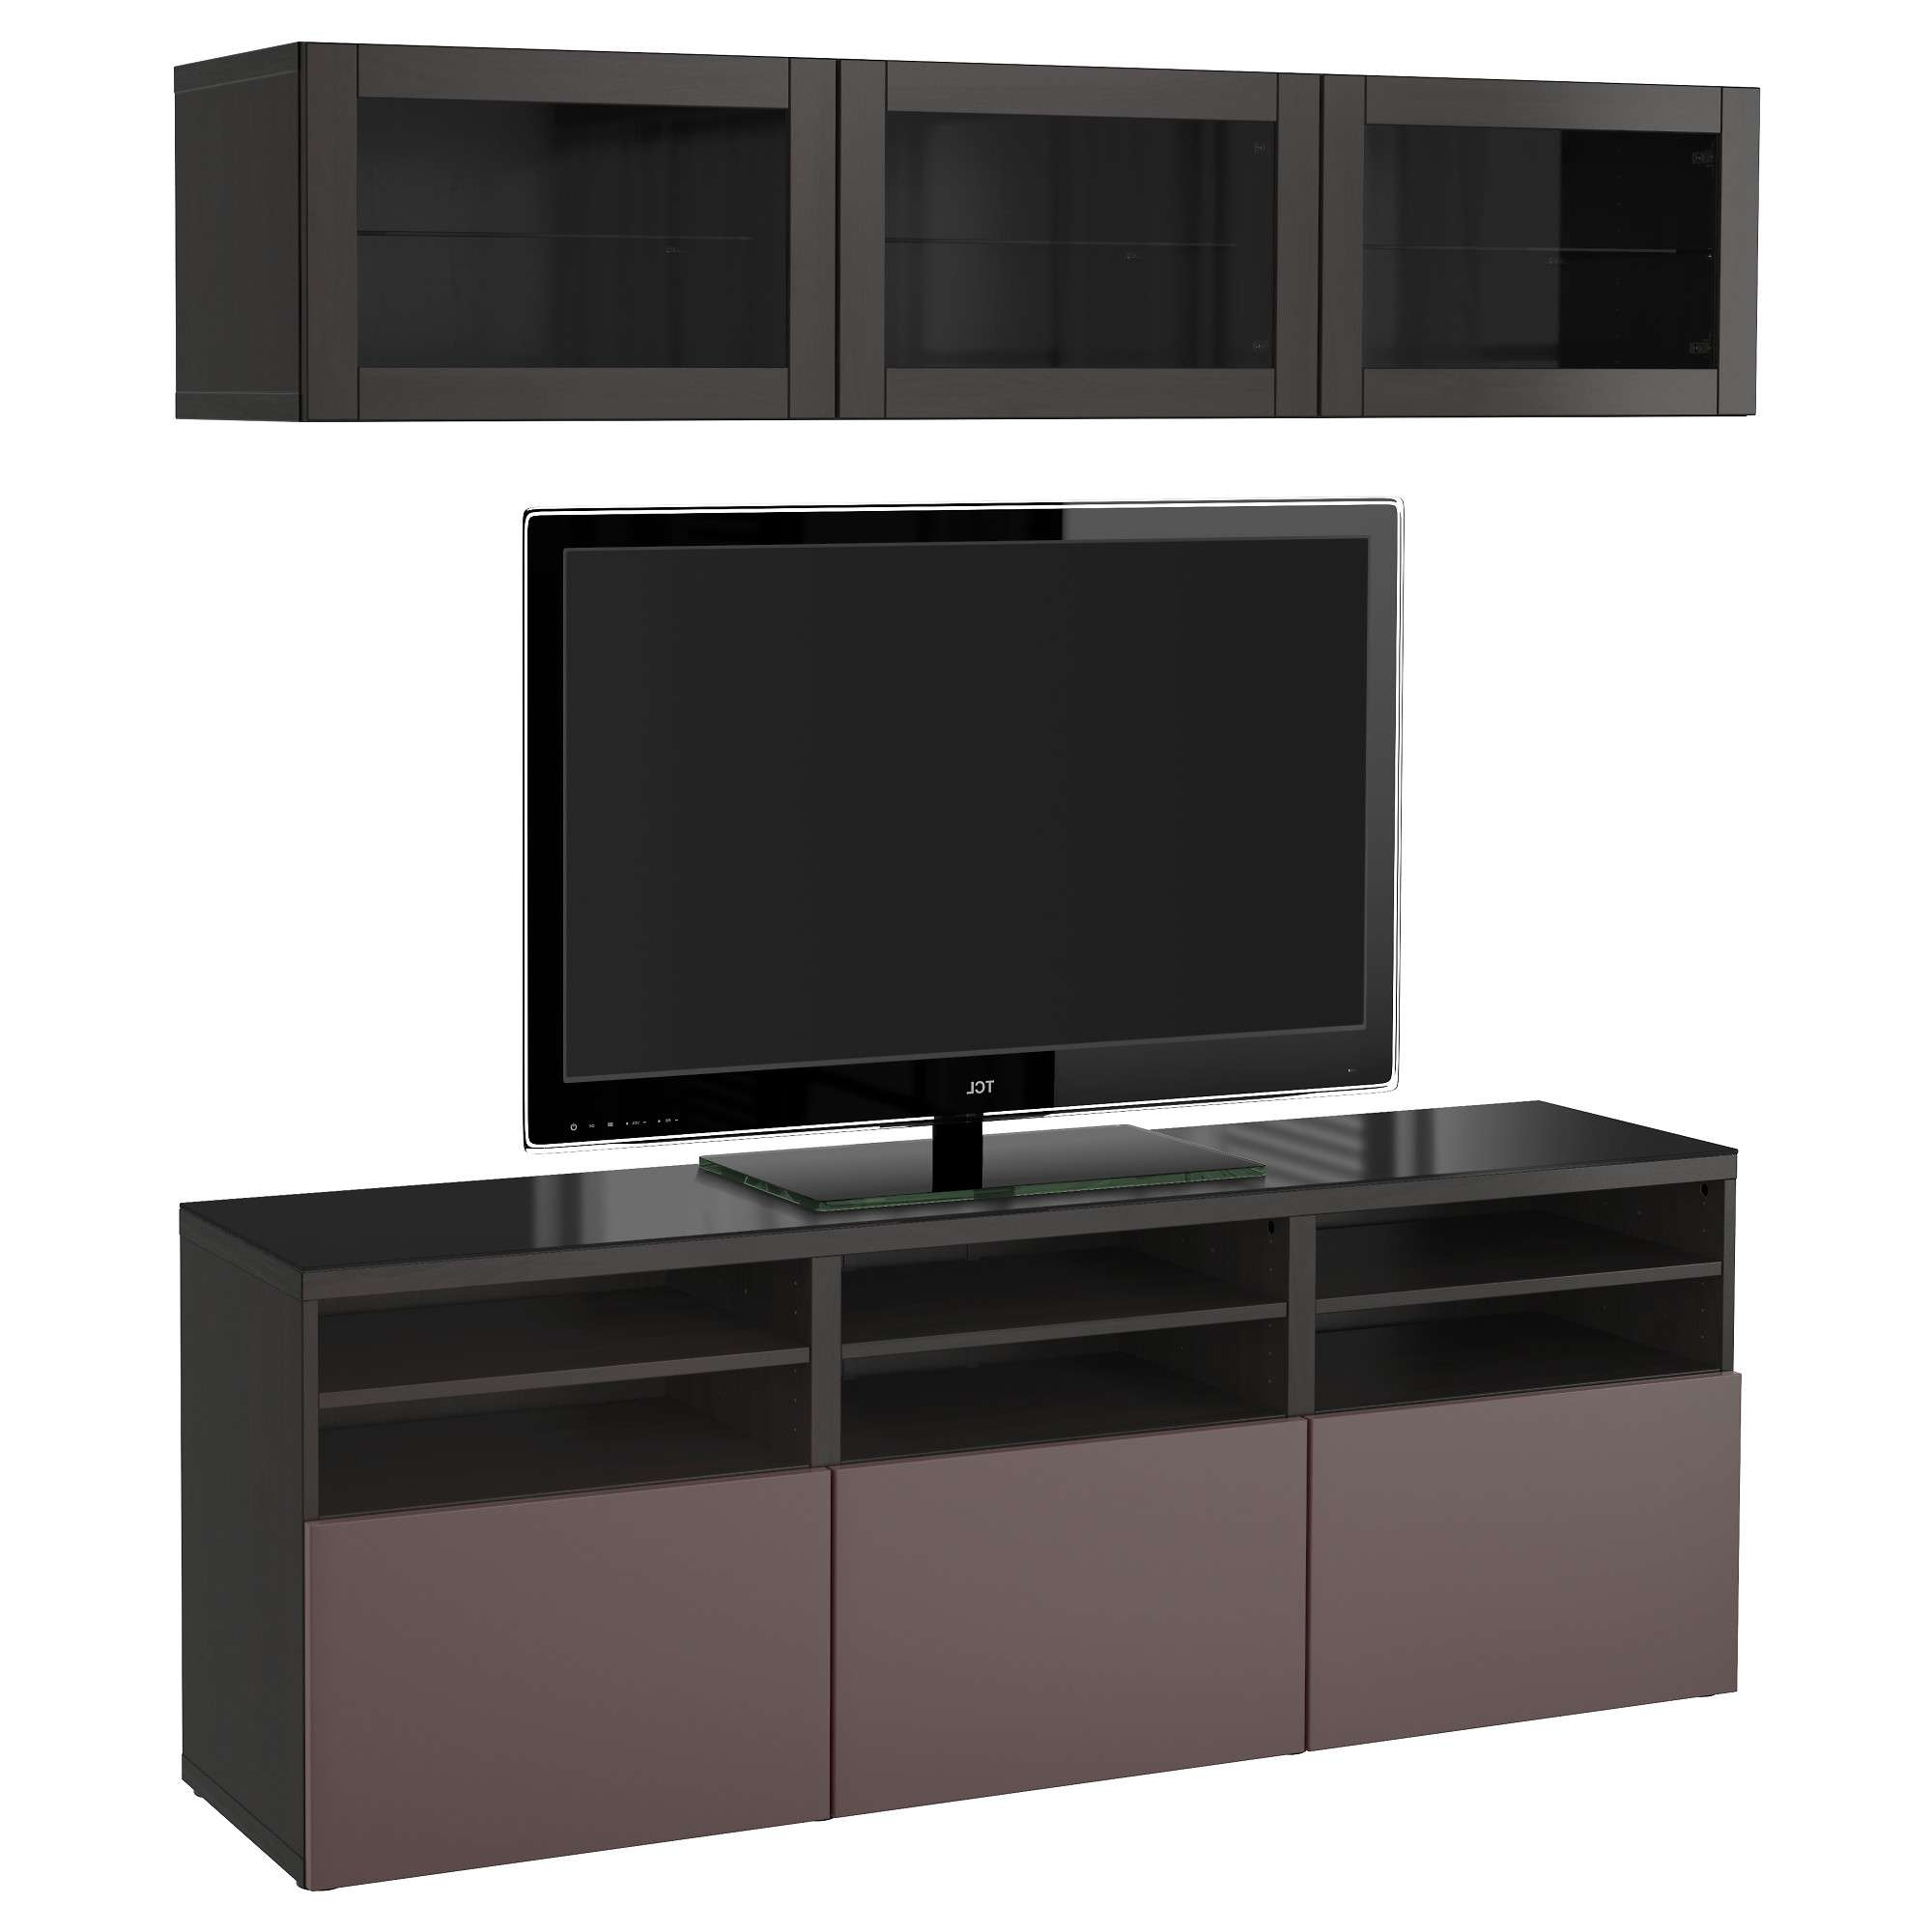 Tv Storage Unit | Tv Wall Units | Ikea Intended For Glass Tv Cabinets (View 16 of 20)